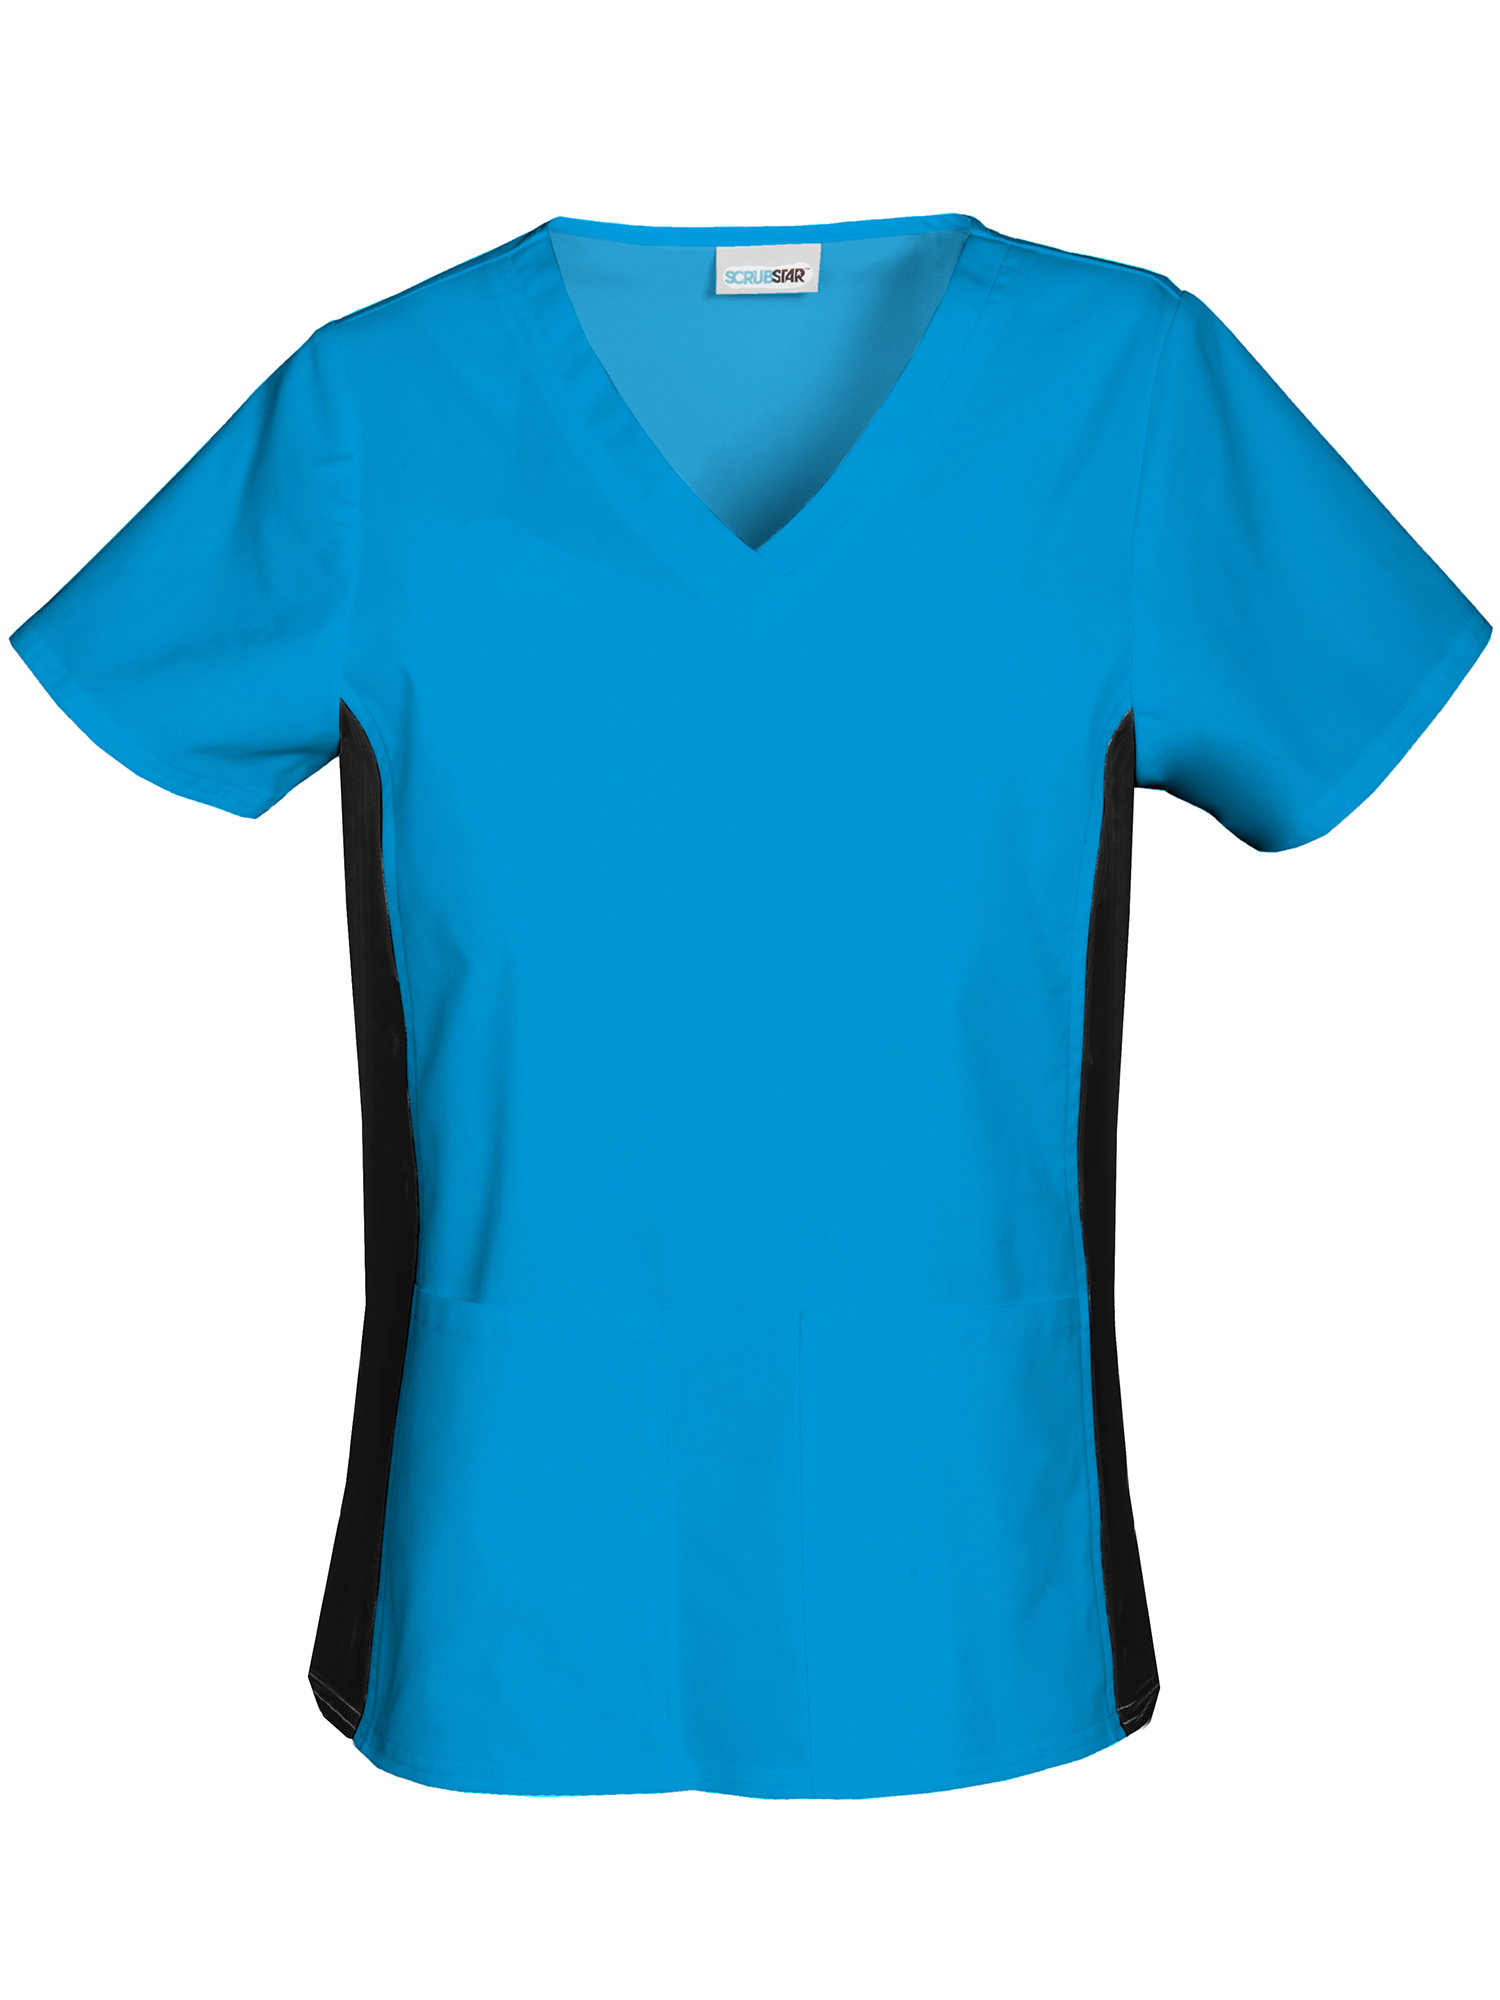 Scrubstar Women's Premium Collection Flexible V-Neck Scrub Top